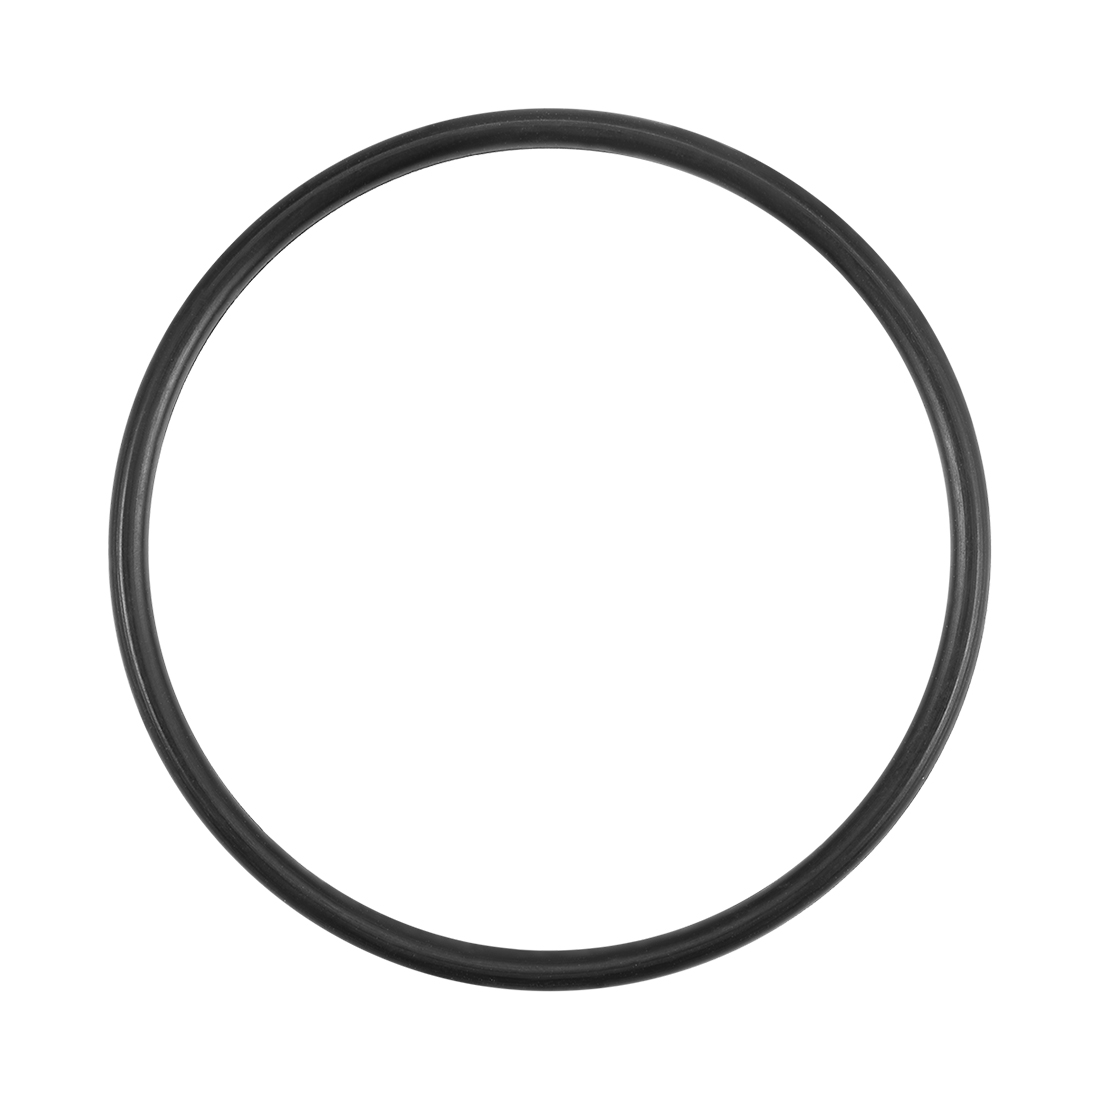 O-Rings Nitrile Rubber 38.7mm x 42.3mm x 1.8mm Round Seal Gasket